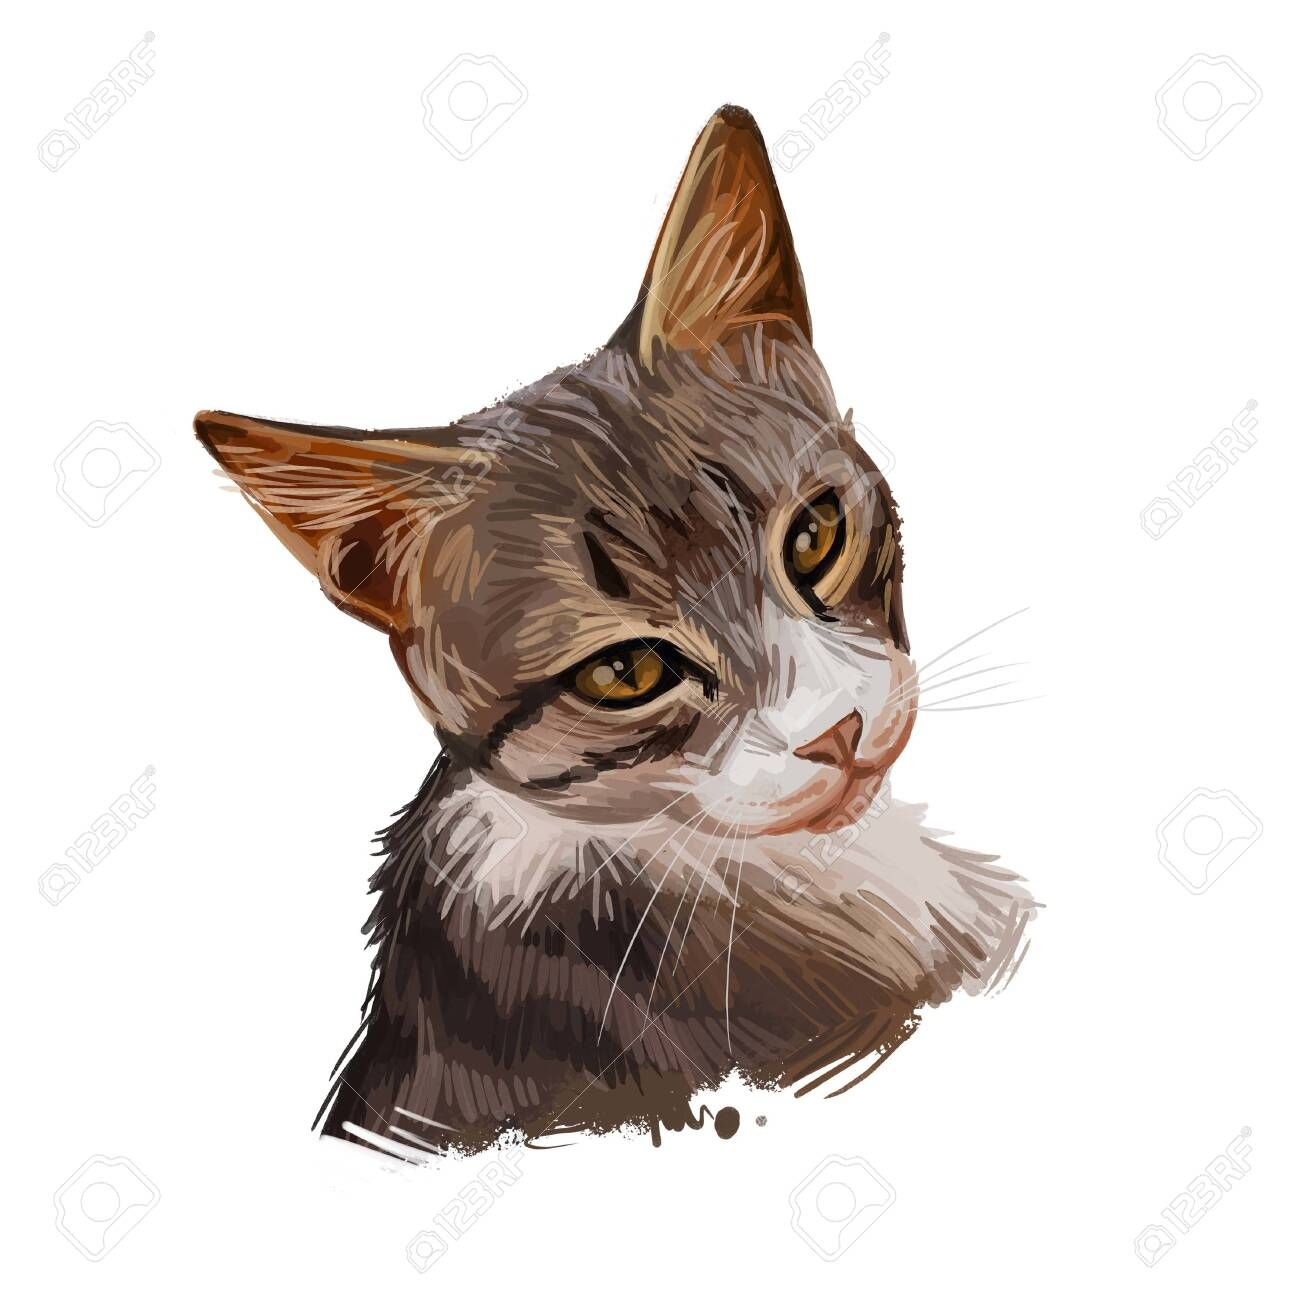 Dragon Li Or Chinese China Li Hua Cat Isolated On White Digital Art Illustration Of Hand Drawn Kitty Fo In 2020 Digital Art Illustration Illustration Art Digital Art